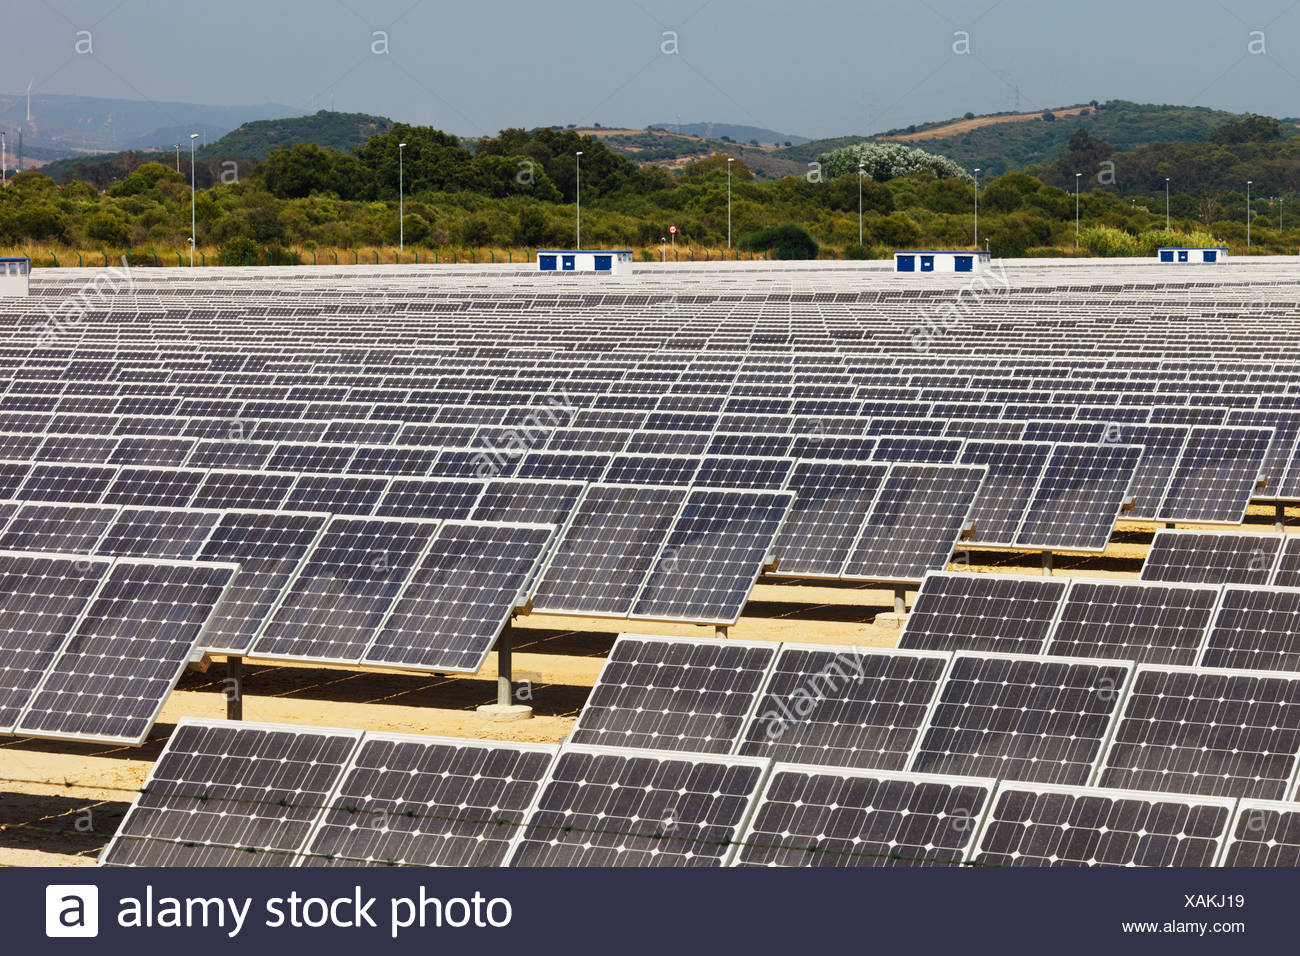 Solar Energy Center in der Nähe von Guadarranque; San Roque, Cádiz, Andalusien, Spanien Stockbild